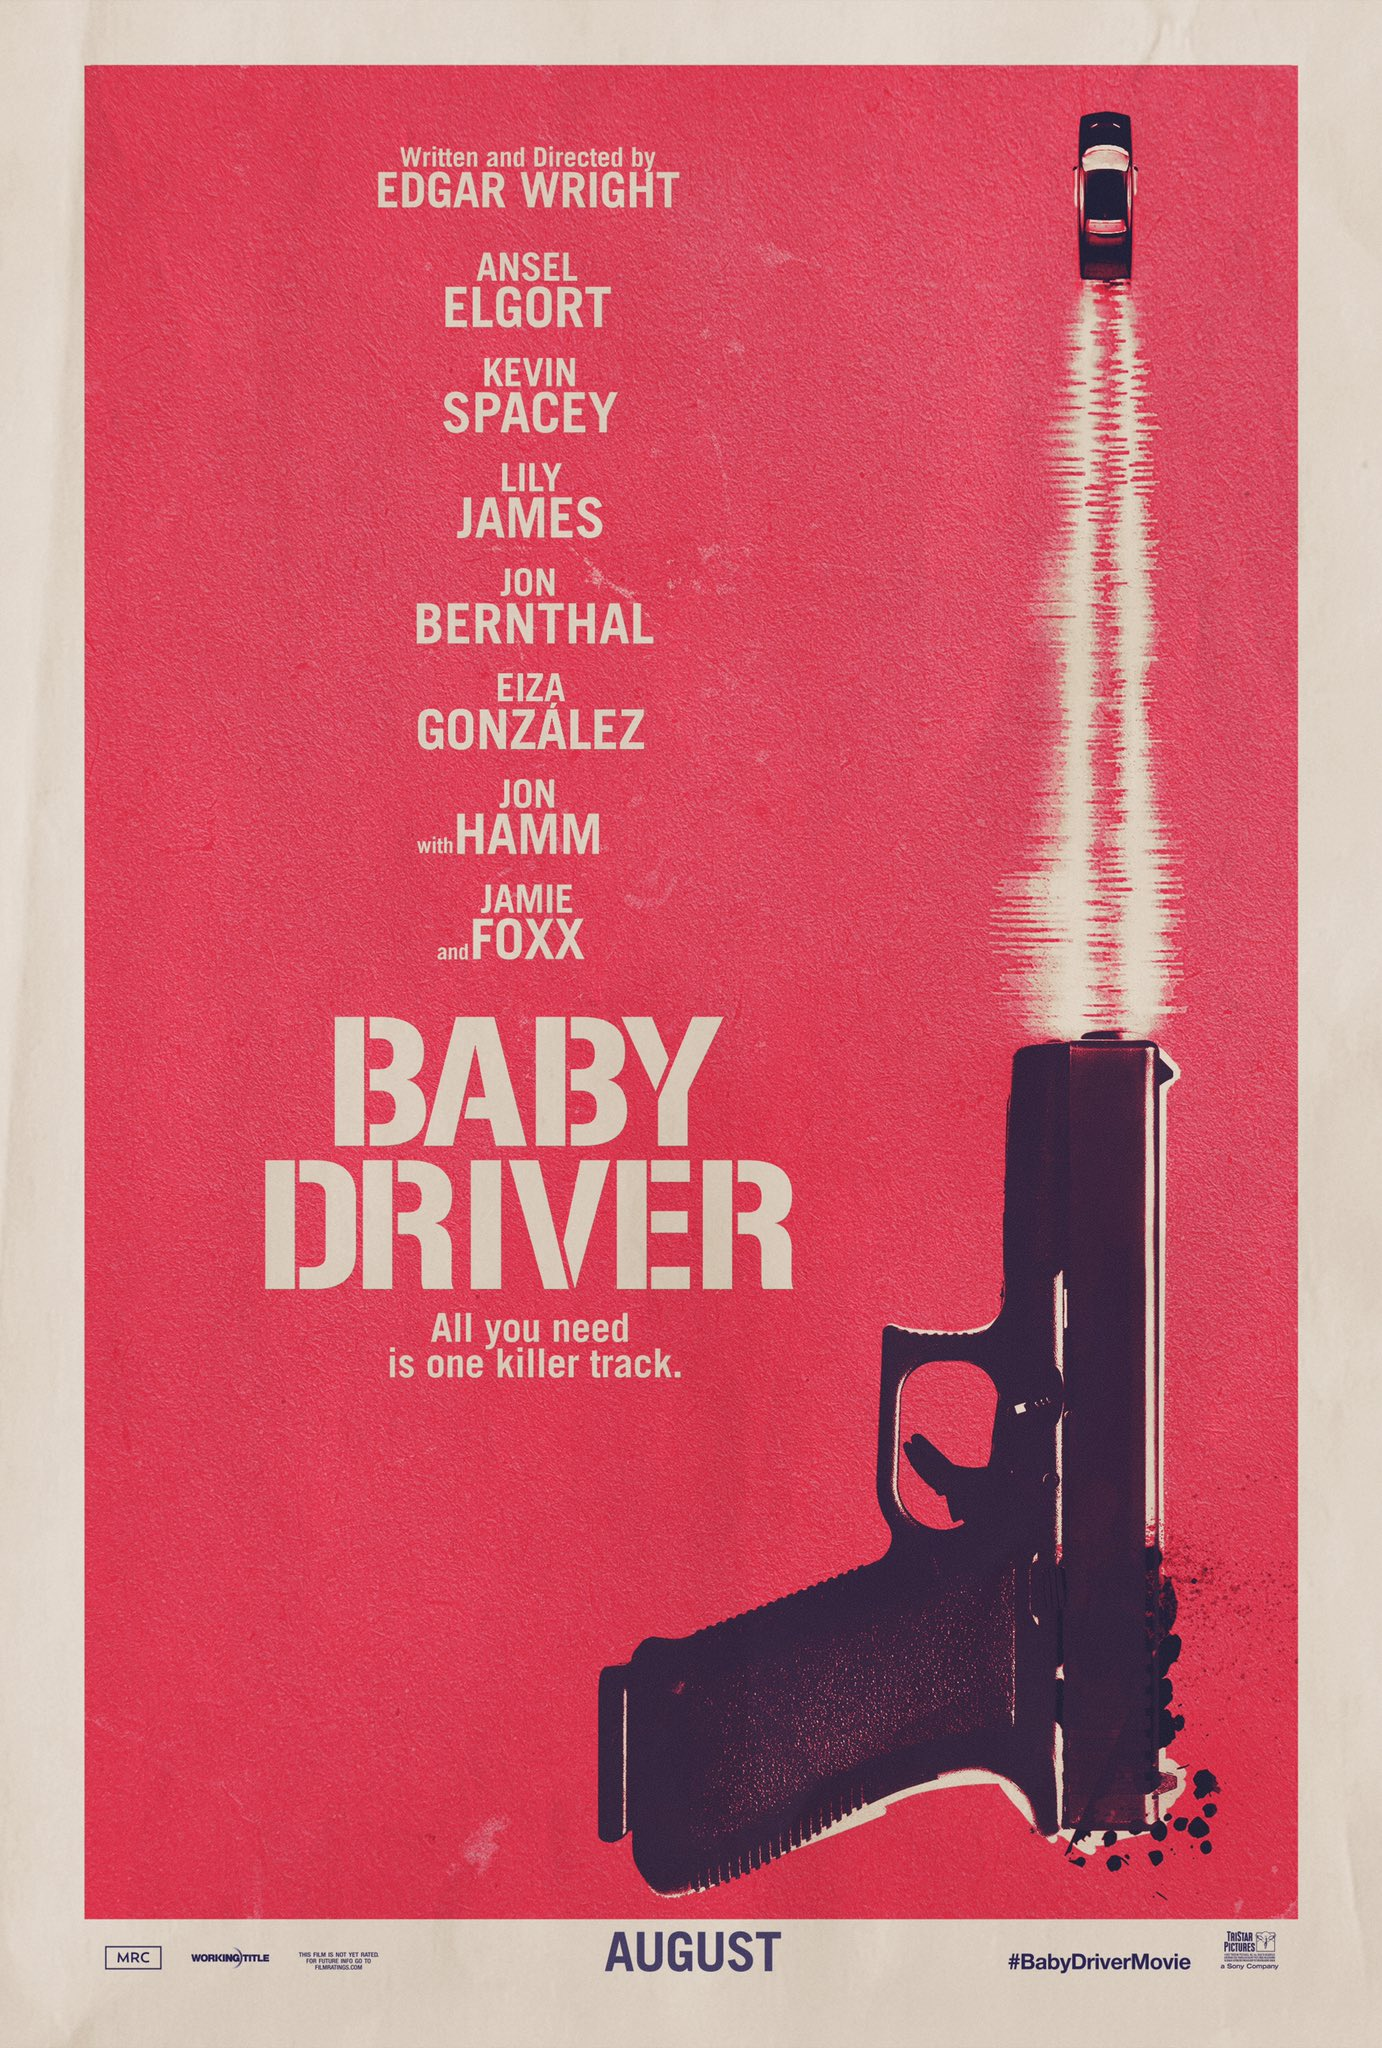 Baby Driver (2017) - Edgar Wright - If you haven't felt it before, you're probably not human. The feeling I'm talking about is you, in your car, windows down, and the song comes on. There's no moment quite like it. Baby Driver is that moment, in a way that we (law abiding citizens) will never feel. Sure, that may be the obvious analogy considering this is the premise of the movie, but because it's one of my favorite feelings in the world, I couldn't help myself.Directed by Edgar Wright and starring a cast that you would want to be best friends with Baby Driver is a summer car movie I'm not ashamed to tell my friends that I saw and loved. Saying a movie is a music video can mean both bad and good things, in this case, good things, very good things. Elgort as Baby was literally and figuratively the driver throughout the movie. I bought into him and everything he brought to the character. I knew I was going to like this movie, because I like all of Wright's stuff but this one is up there with his best for me. He made it feel retro in a modern time and it fucking worked, which makes me hate him with envy.There's very little to dislike about this movie, unless you don't like criminals in which case, what movies do you like? I laughed, I cried (no), I drank (beer), and I loved. See this fucking movie. Not because it's the anti Fast and Furious (though it is) but because you will like it.What to like: Baby drivers. Music! The walking to the beat and diegetic and non-diegetic sound. The actors. The gottdamn music!What not to like: I dare you to not like something.Reel Rotten Rating: Not reel rotten, just real fucking great.